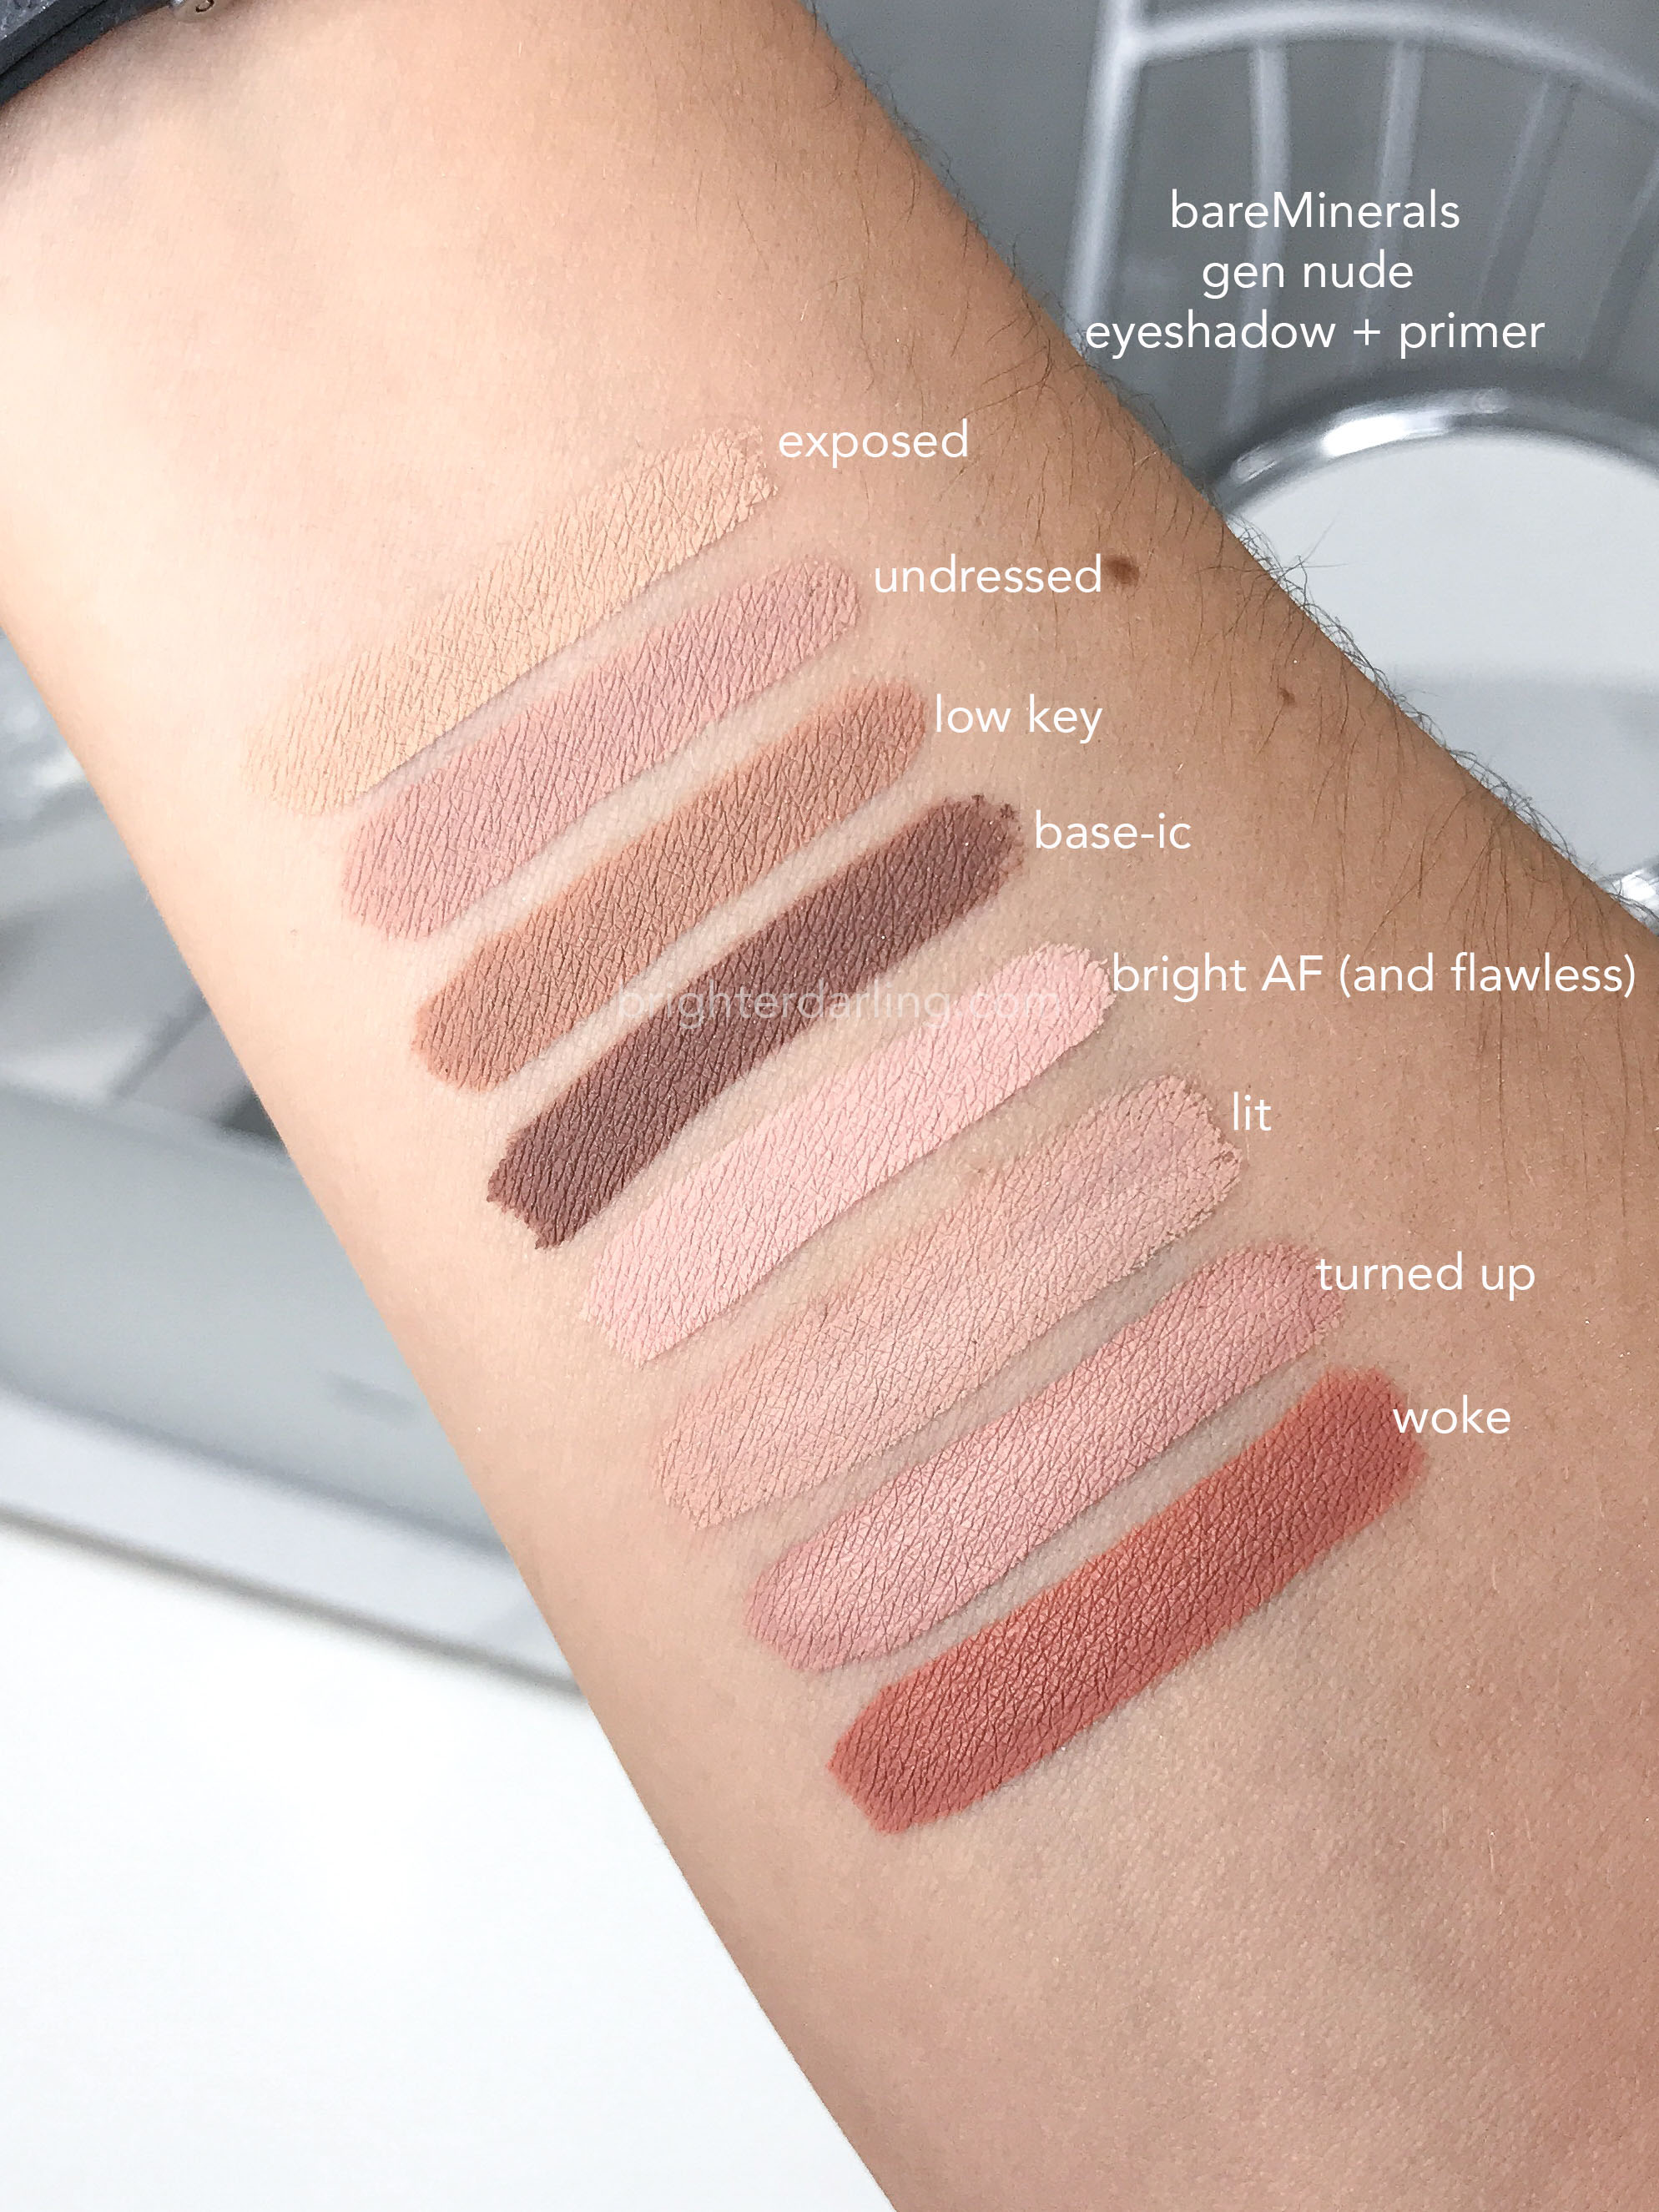 bareMinerals gen nude primer swatches labeled